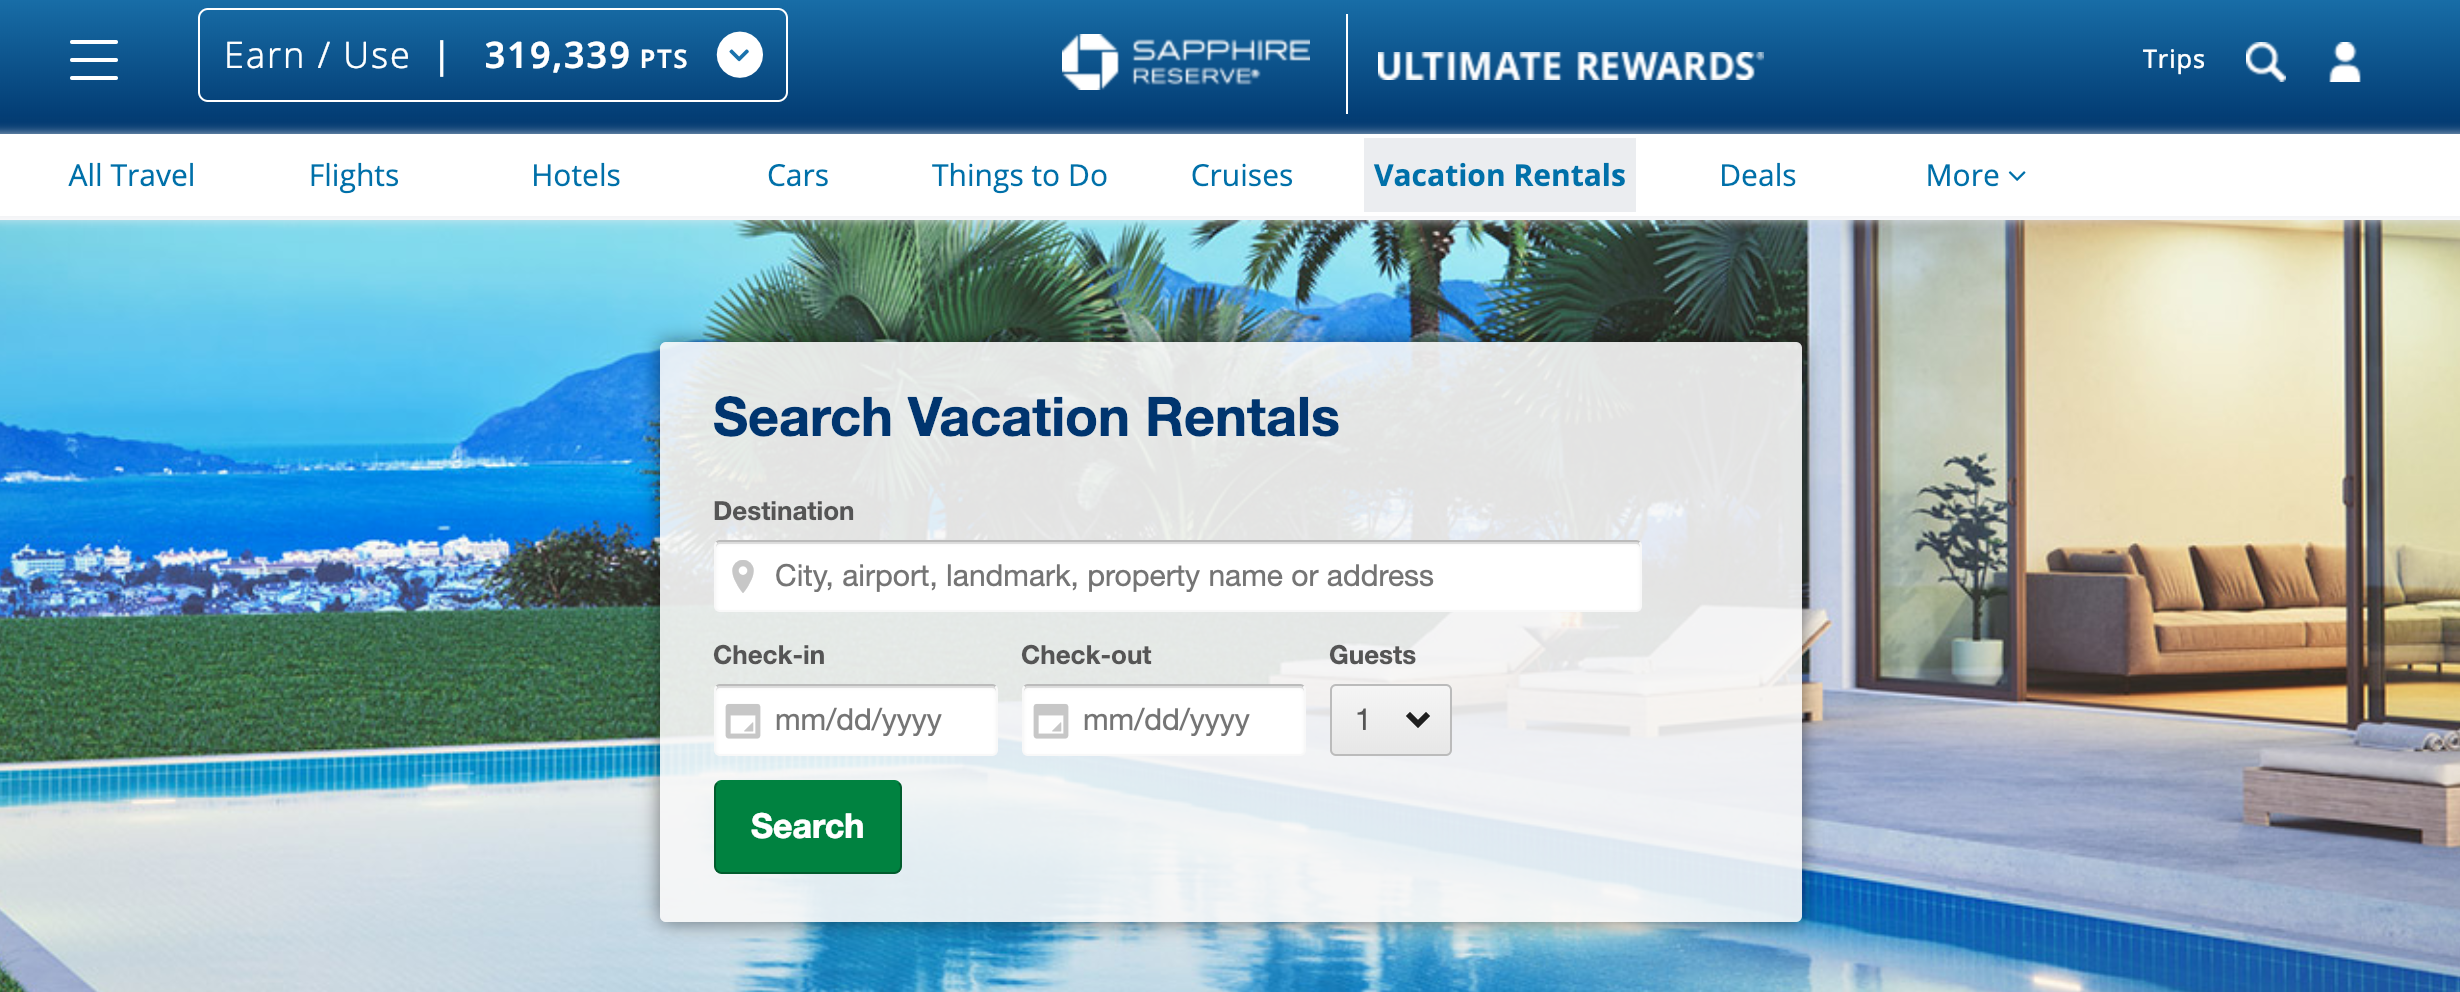 The Chase Ultimate Rewards Travel Portal - Full Guide [2019]